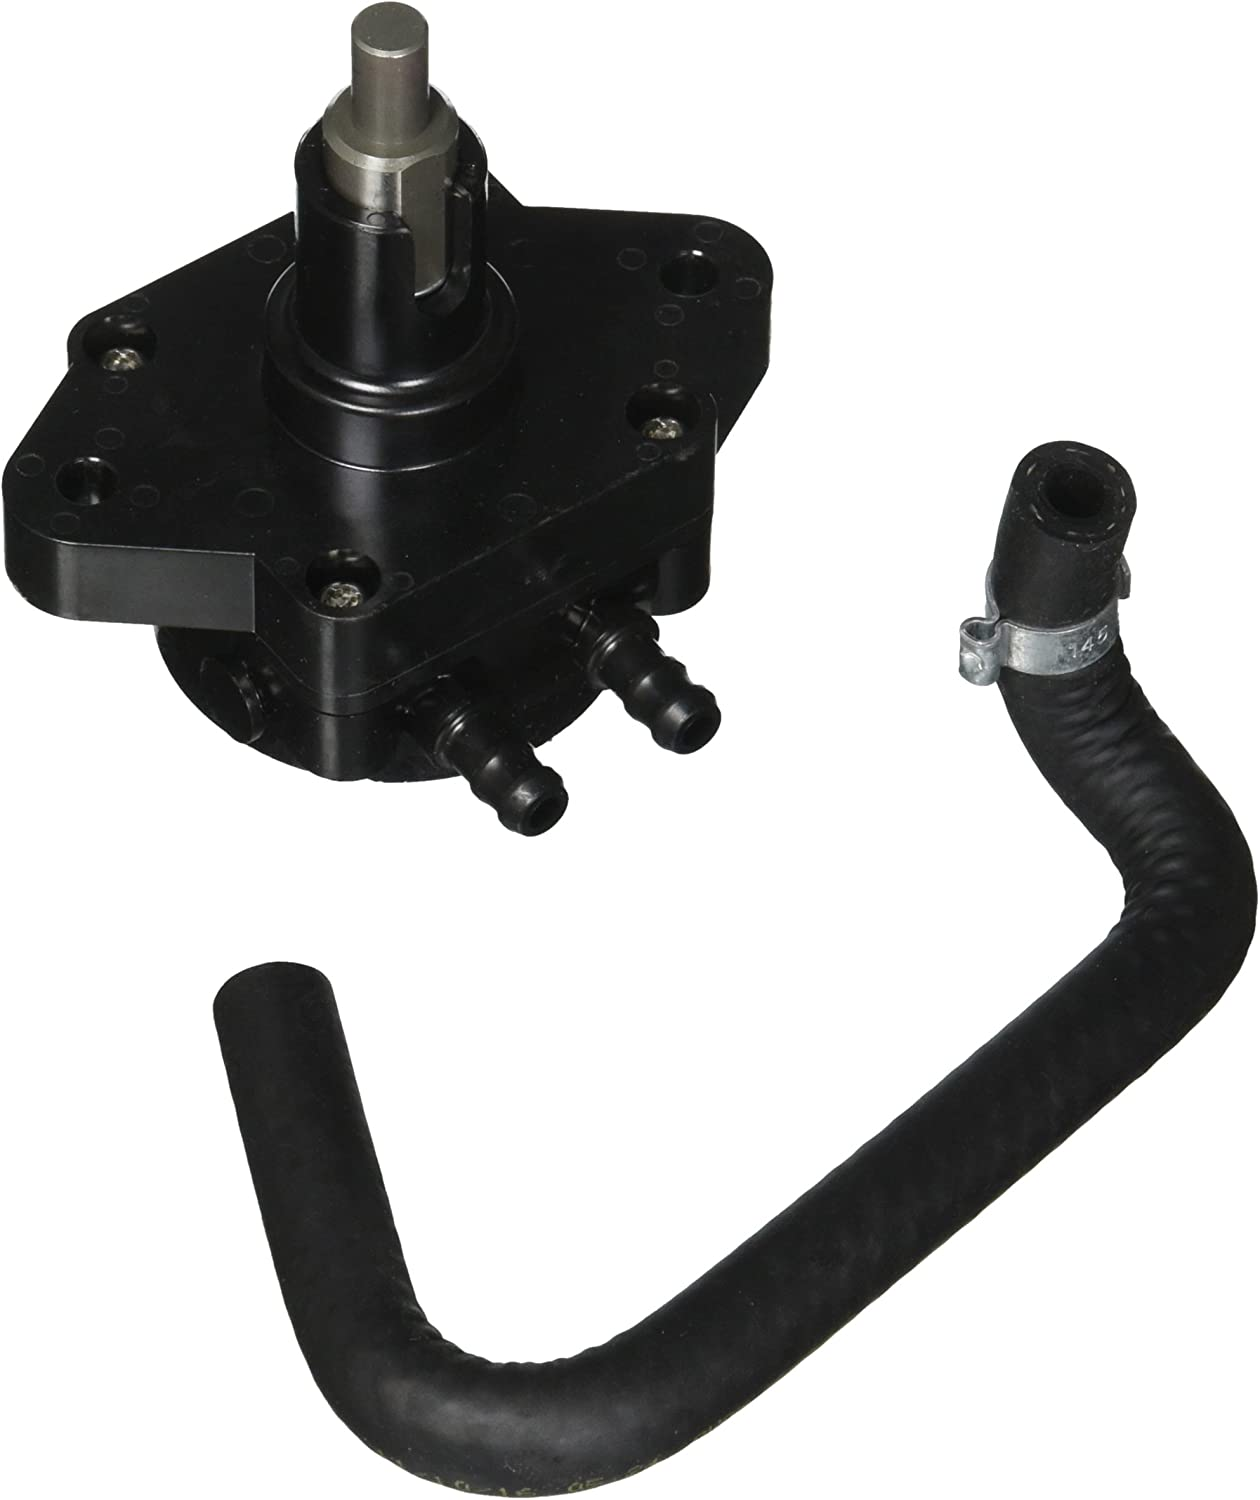 Briggs and Stratton 844087 Fuel Pump Lawn Mower Replacement Parts